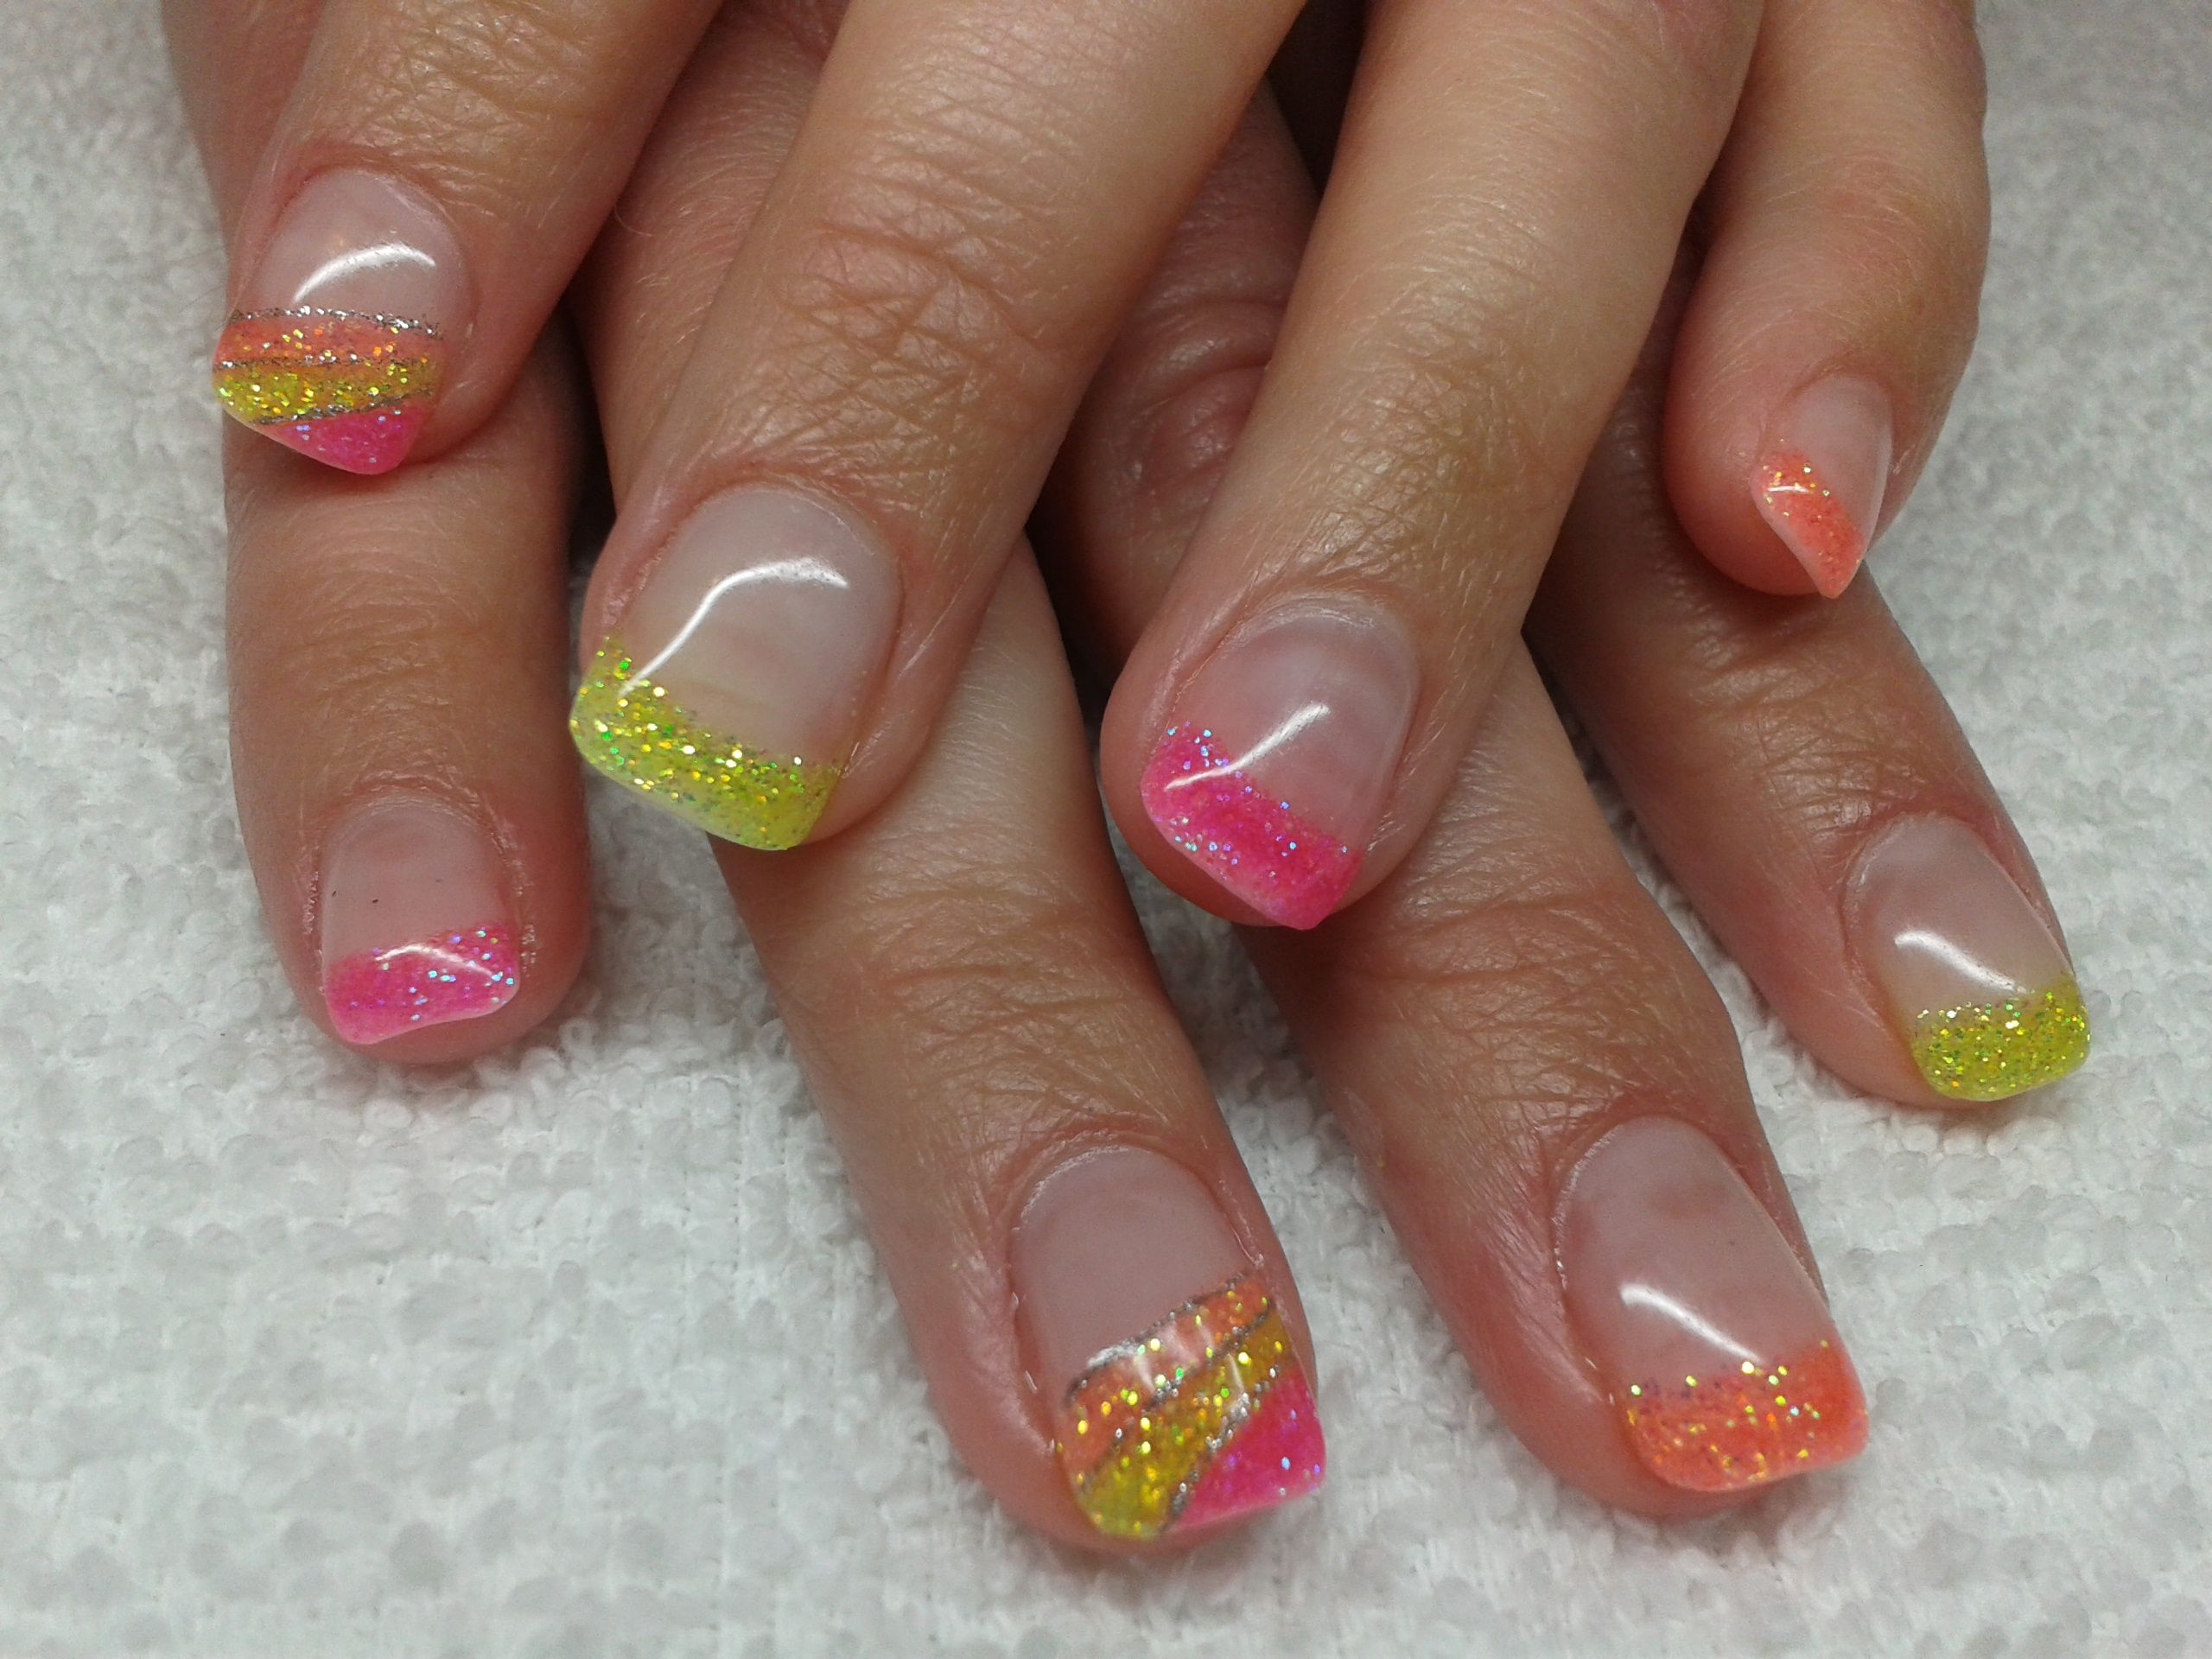 Orange pink and yellow glitter gel nails nail design ideas orange pink and yellow glitter gel nails prinsesfo Images